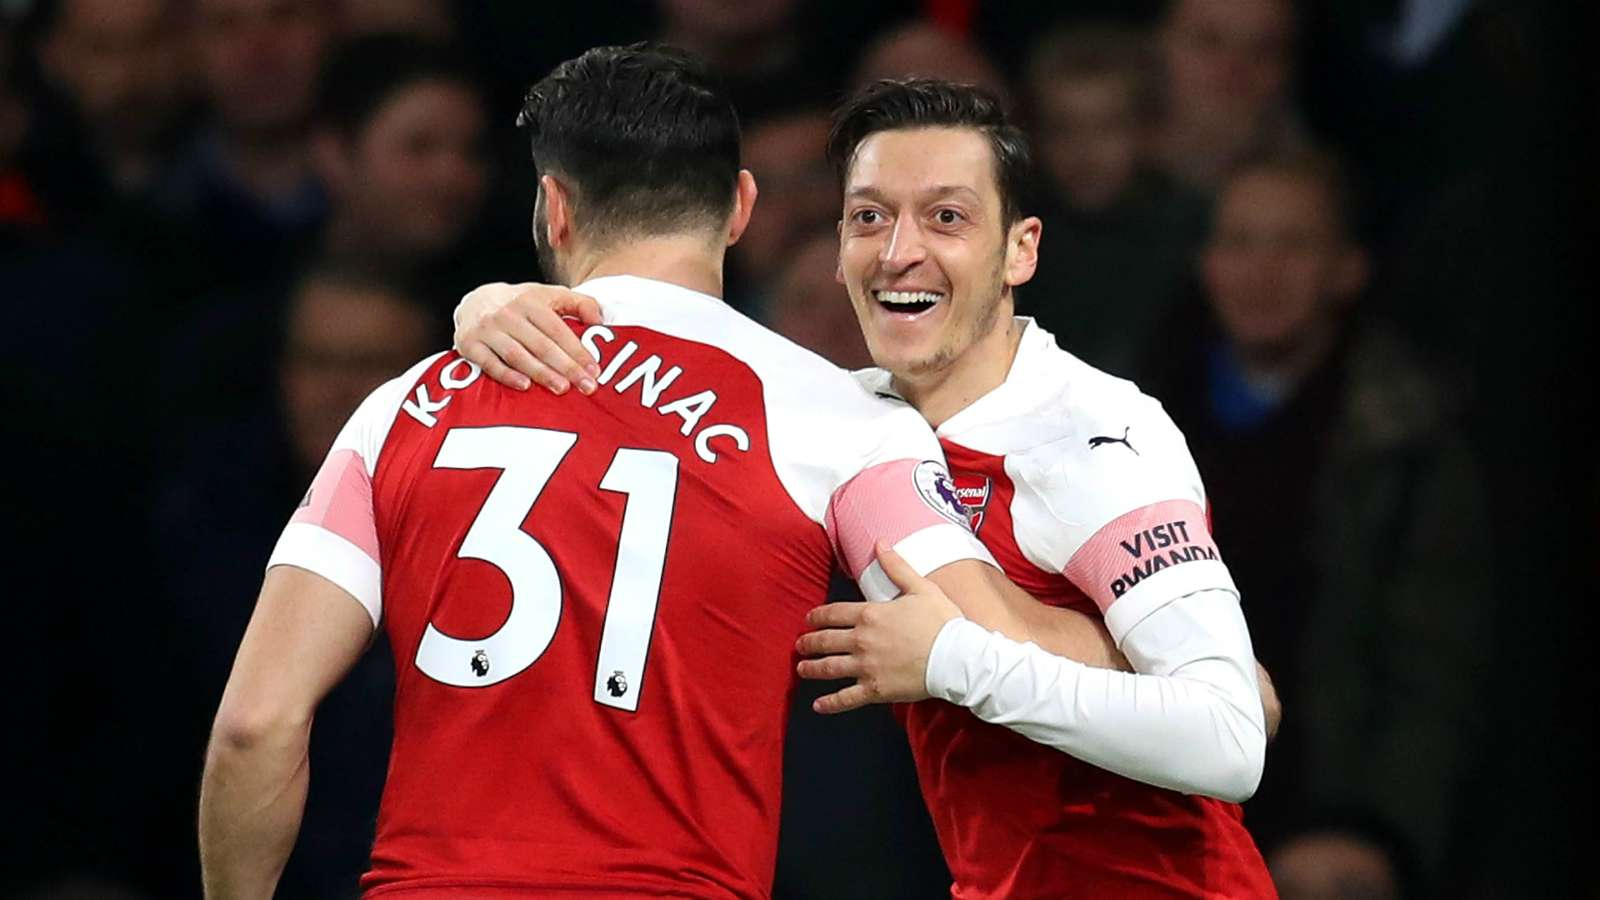 mesut ozil OKAY NG - Arsenal vs Bournemouth 5-1: Premier League Match Report & Highlights [Watch Video]